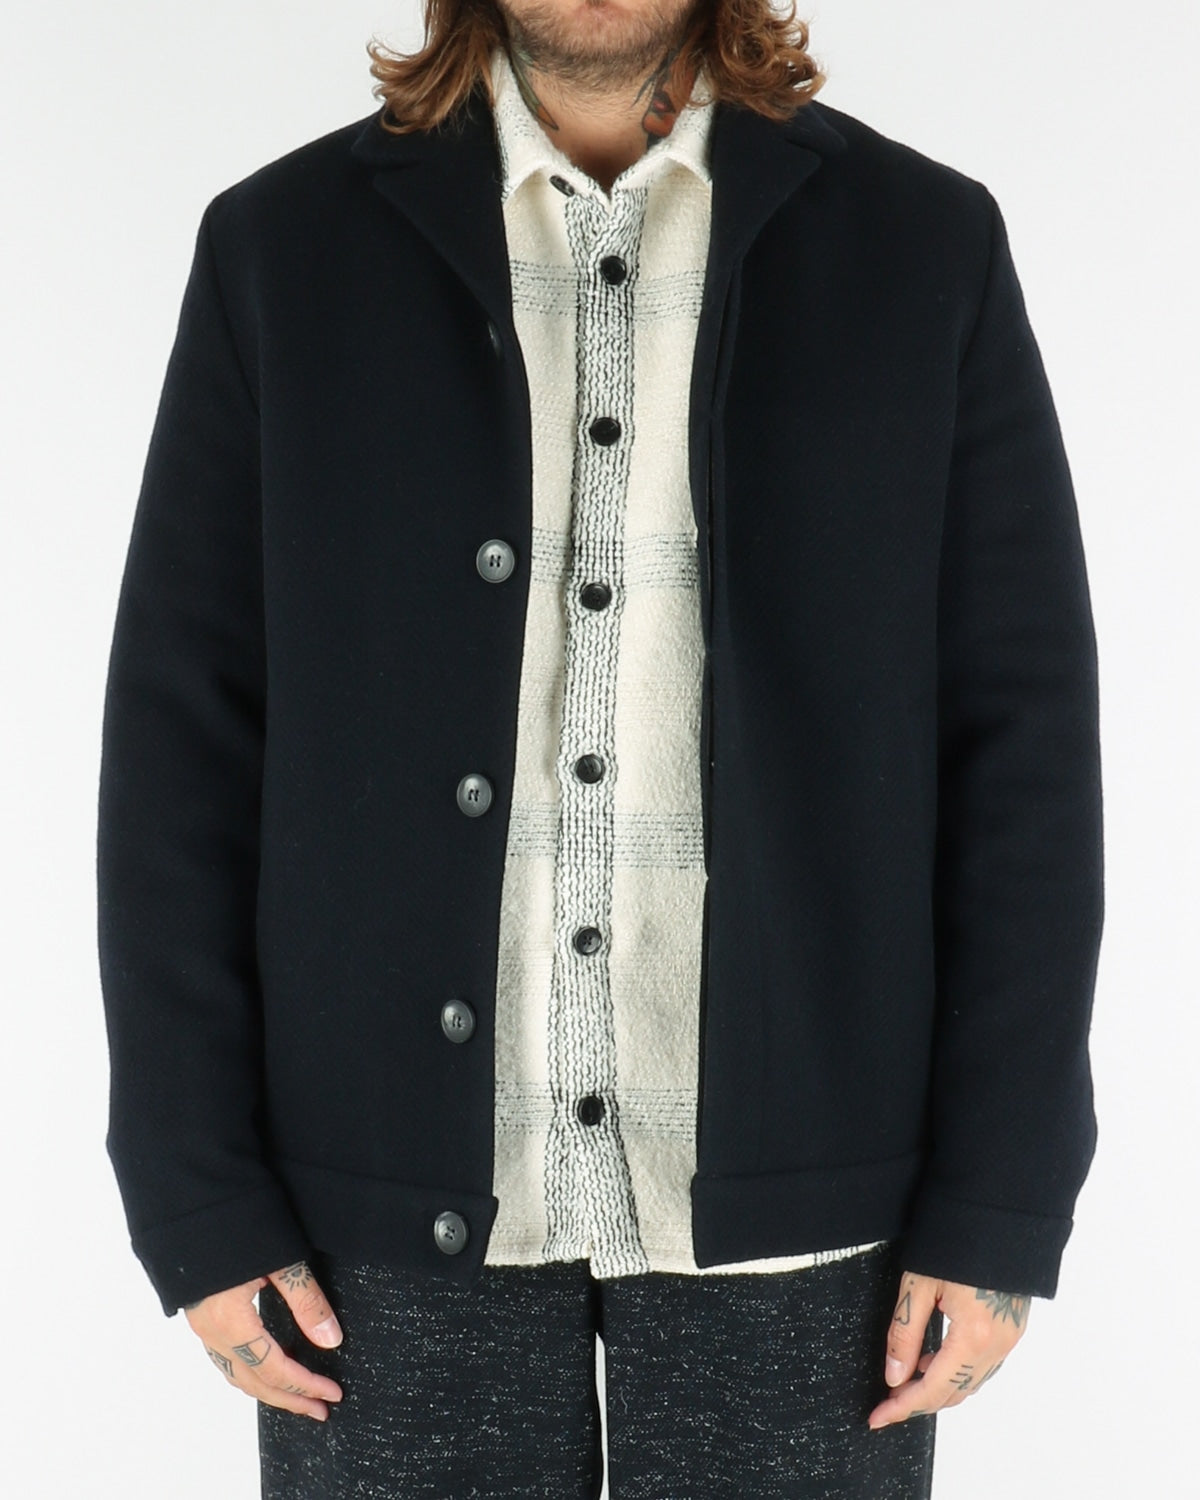 journal clothing_pom jacket_navy_view_2_3